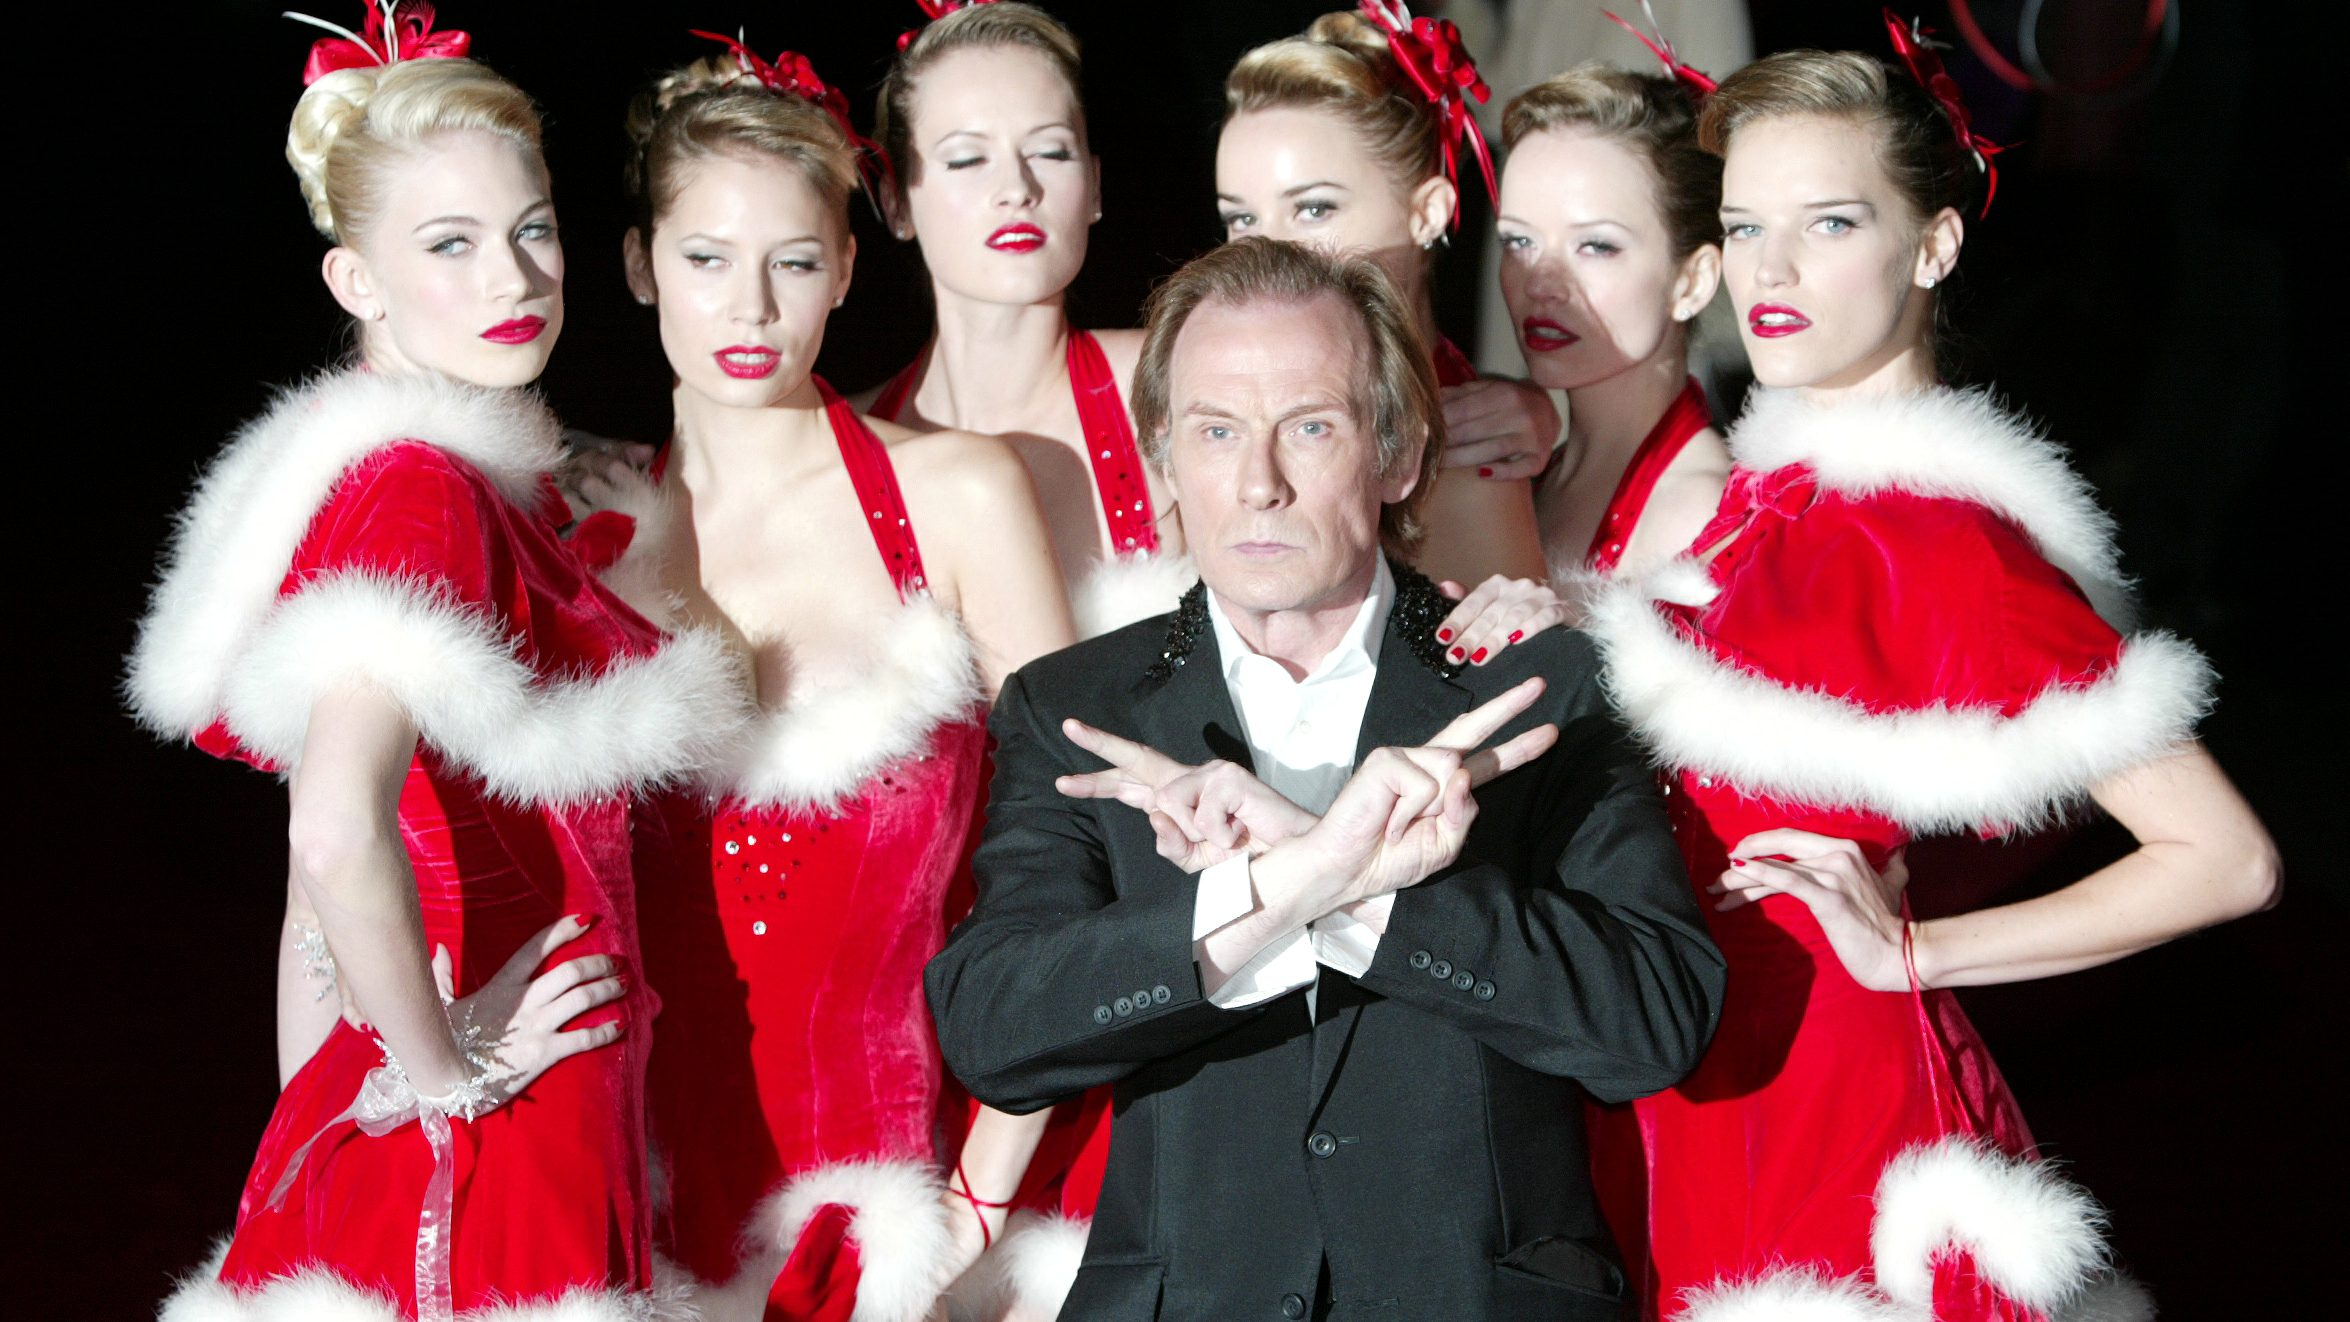 Bill Nighy accompanied by six models arrives for the UK charity premiere of 'Love Actually' in Leicester Square, London November 16, 2003.